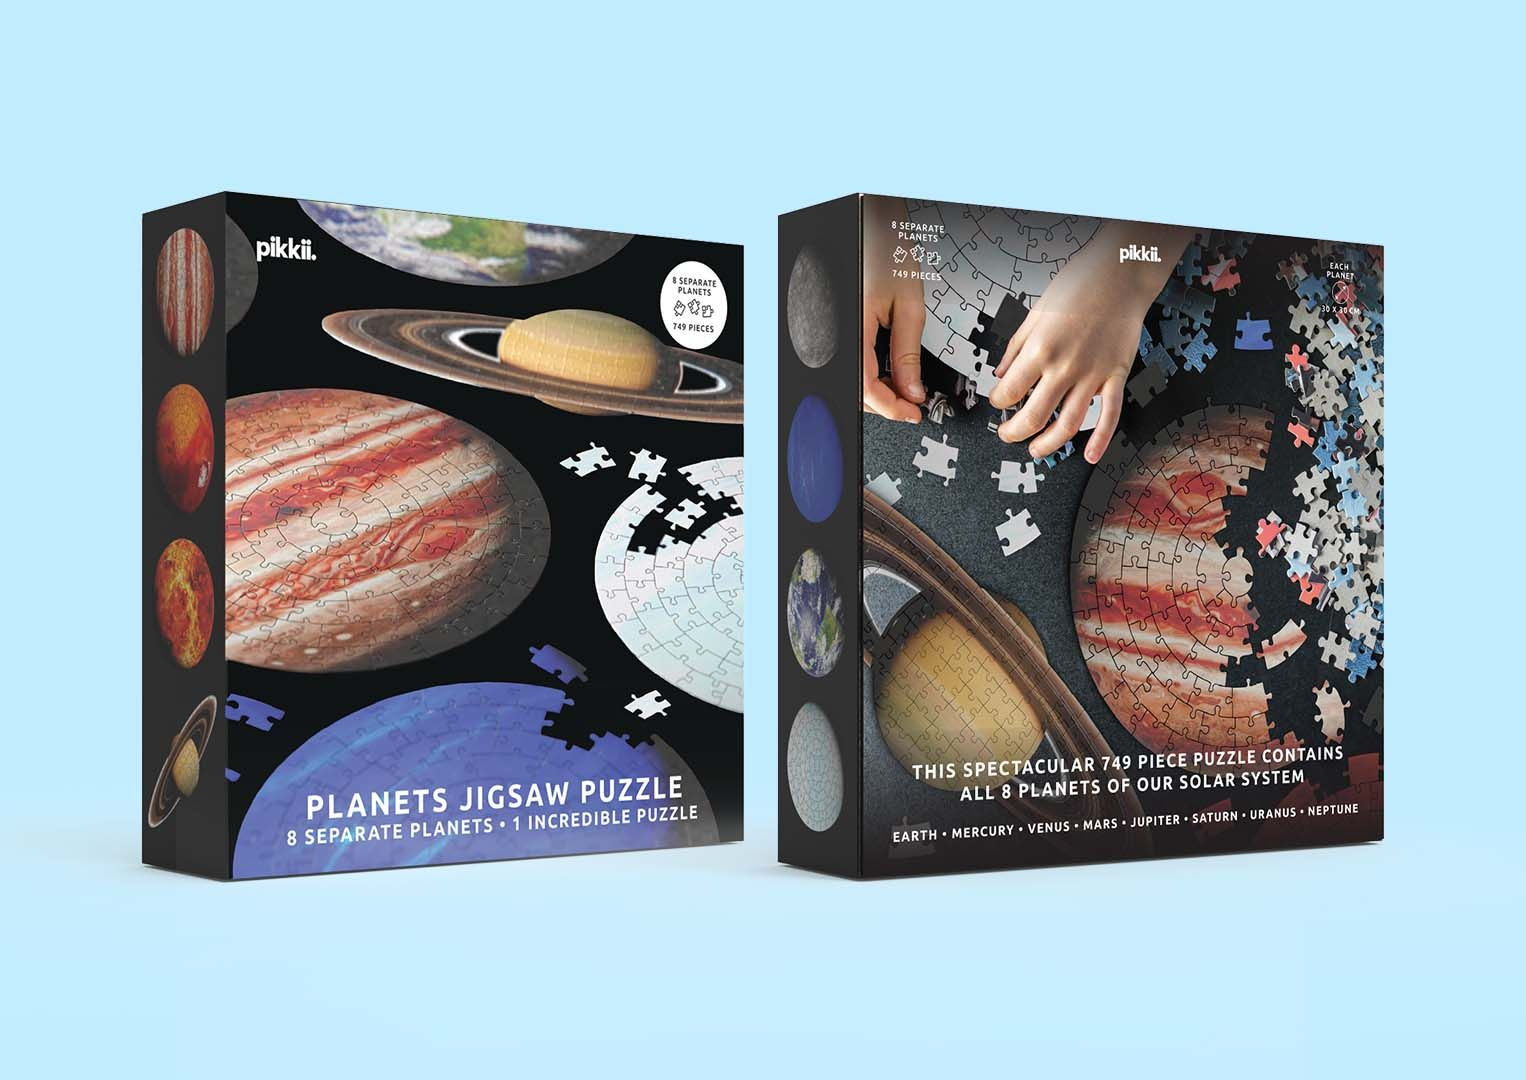 Planet Jigsaw Puzzle Packaging Front And Back